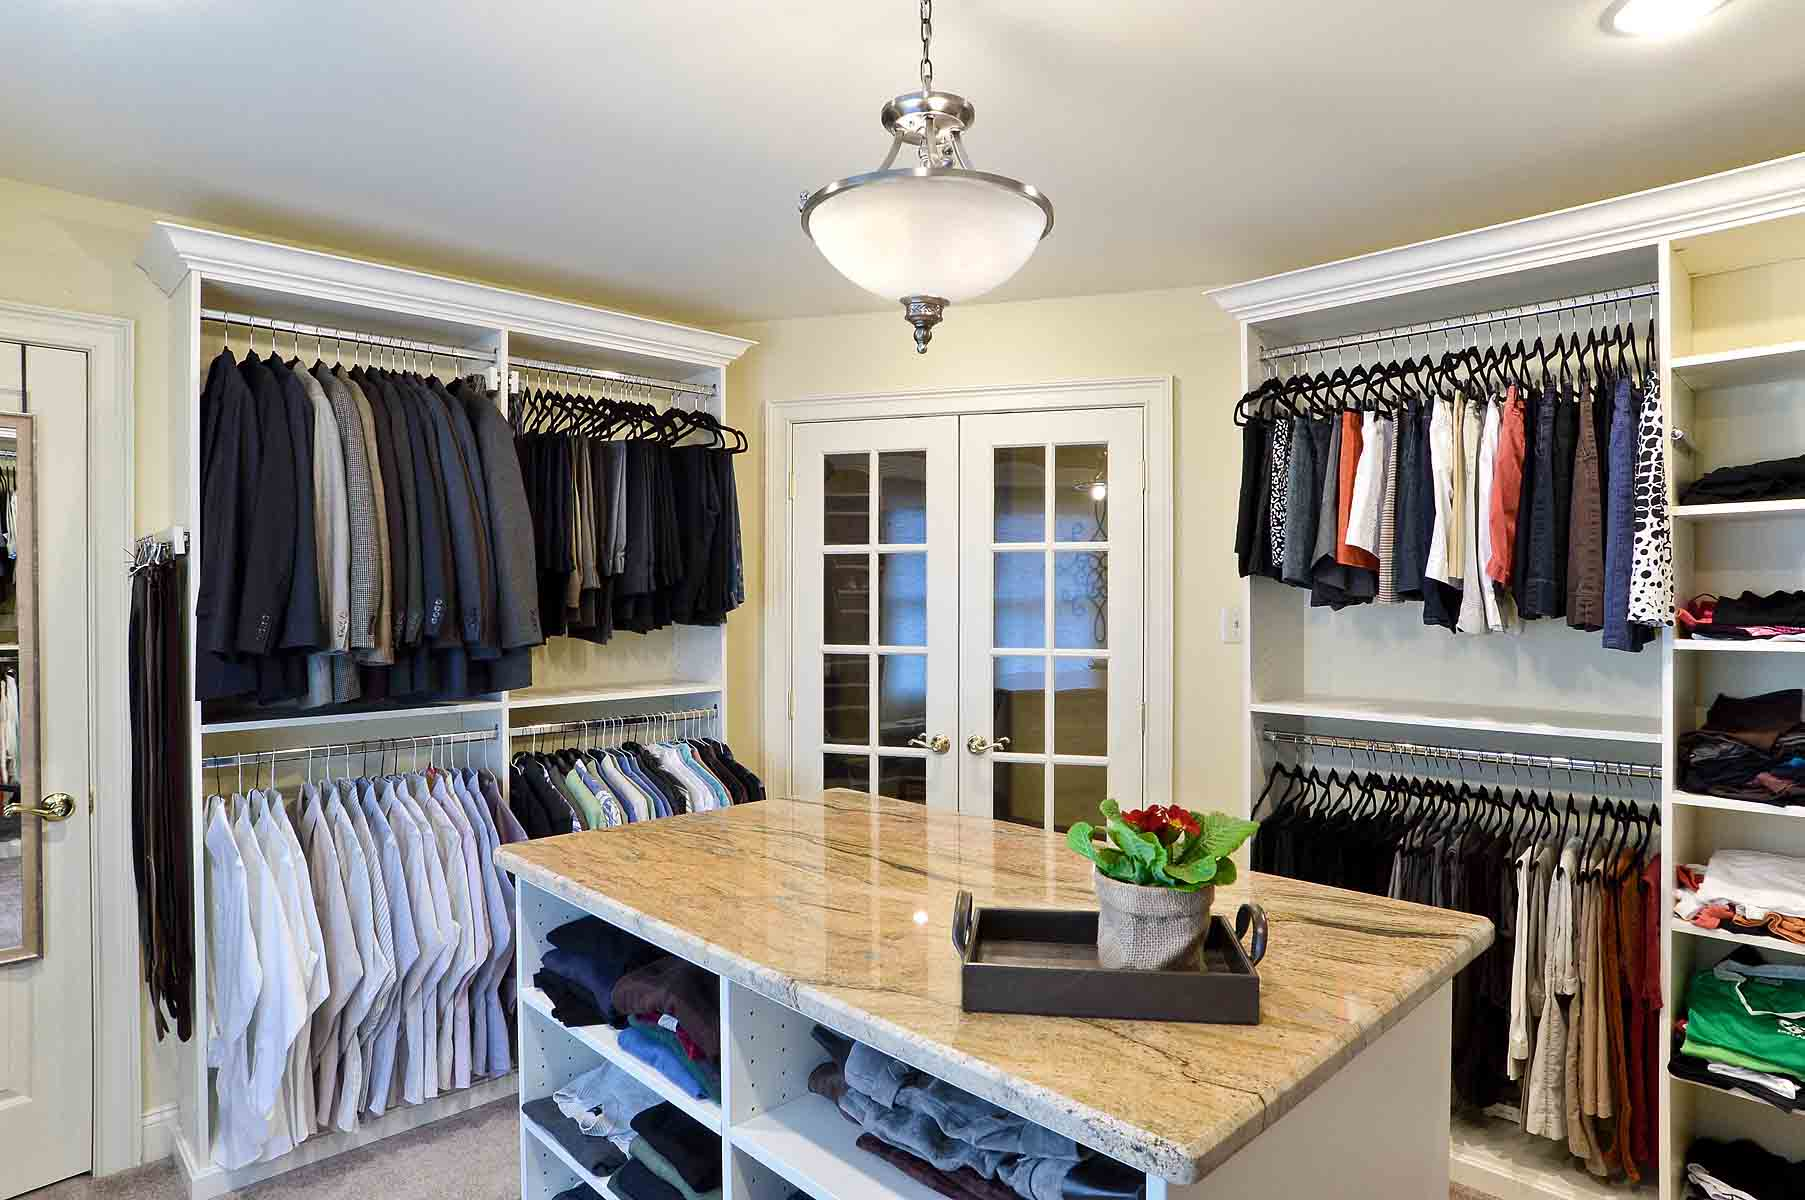 Walk-In Closet with clothing cared for an organized